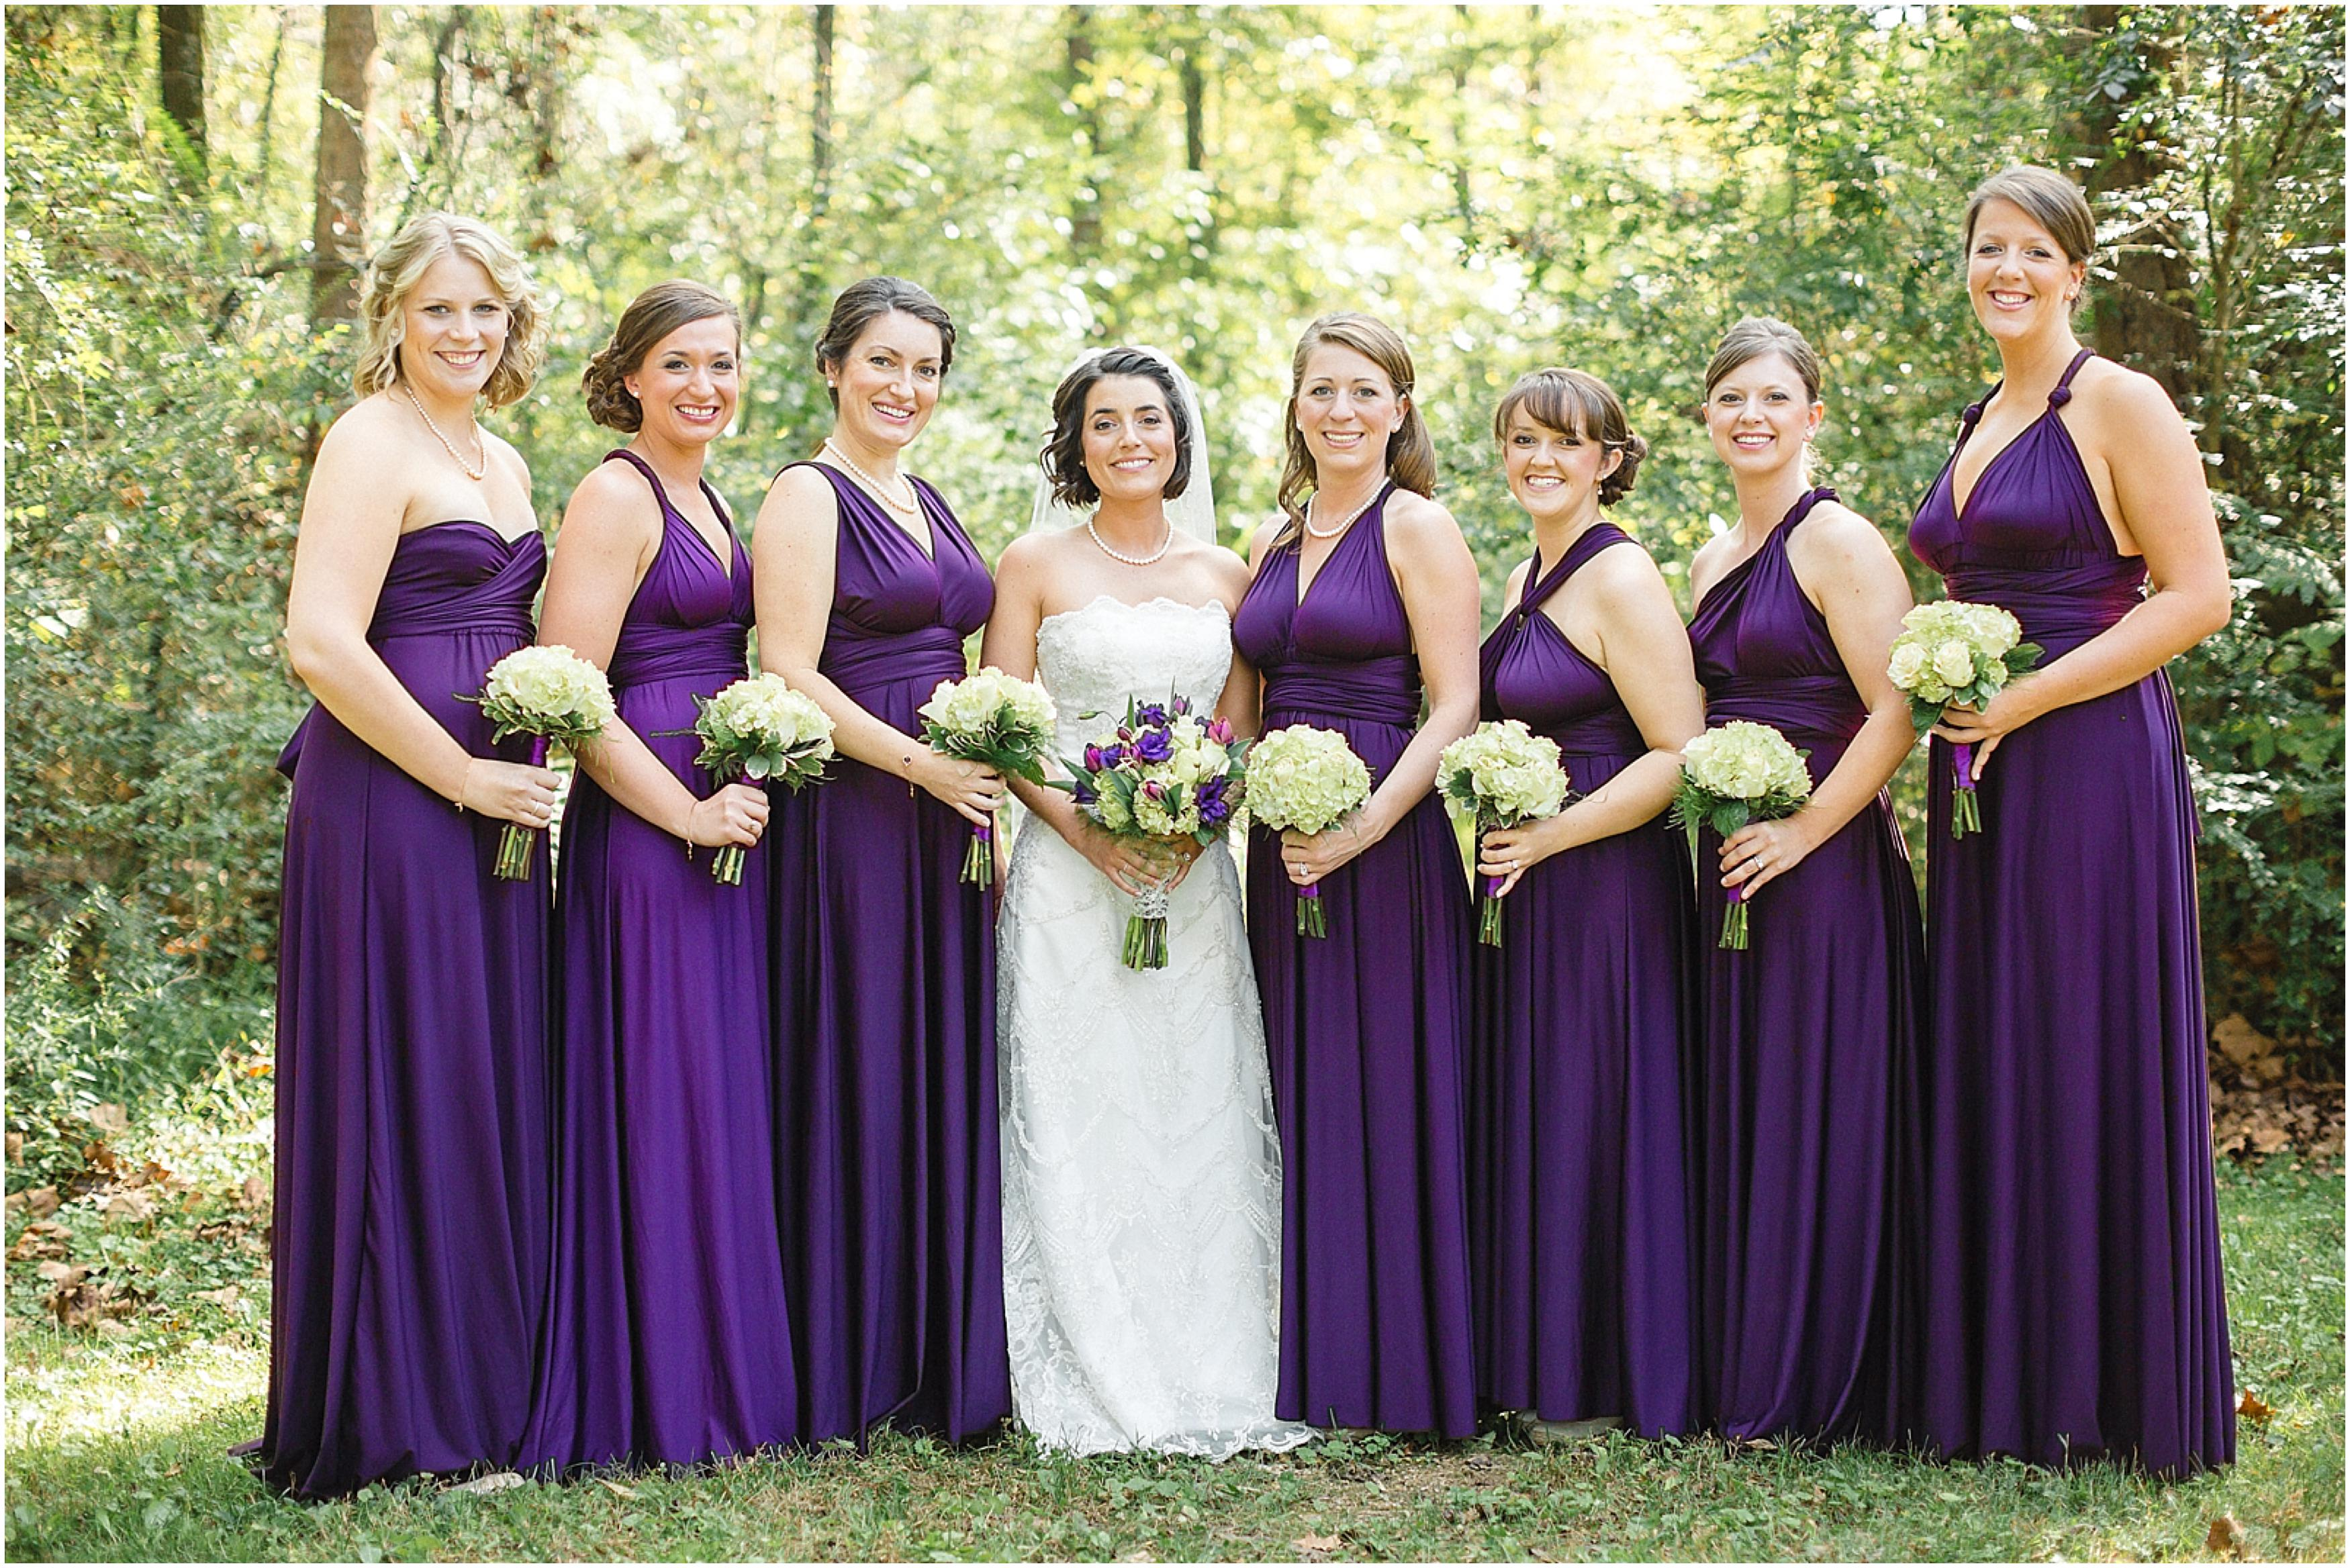 Top 18 mismatched bridesmaid dresses ideas zoomzee 8 ombrellifo Choice Image